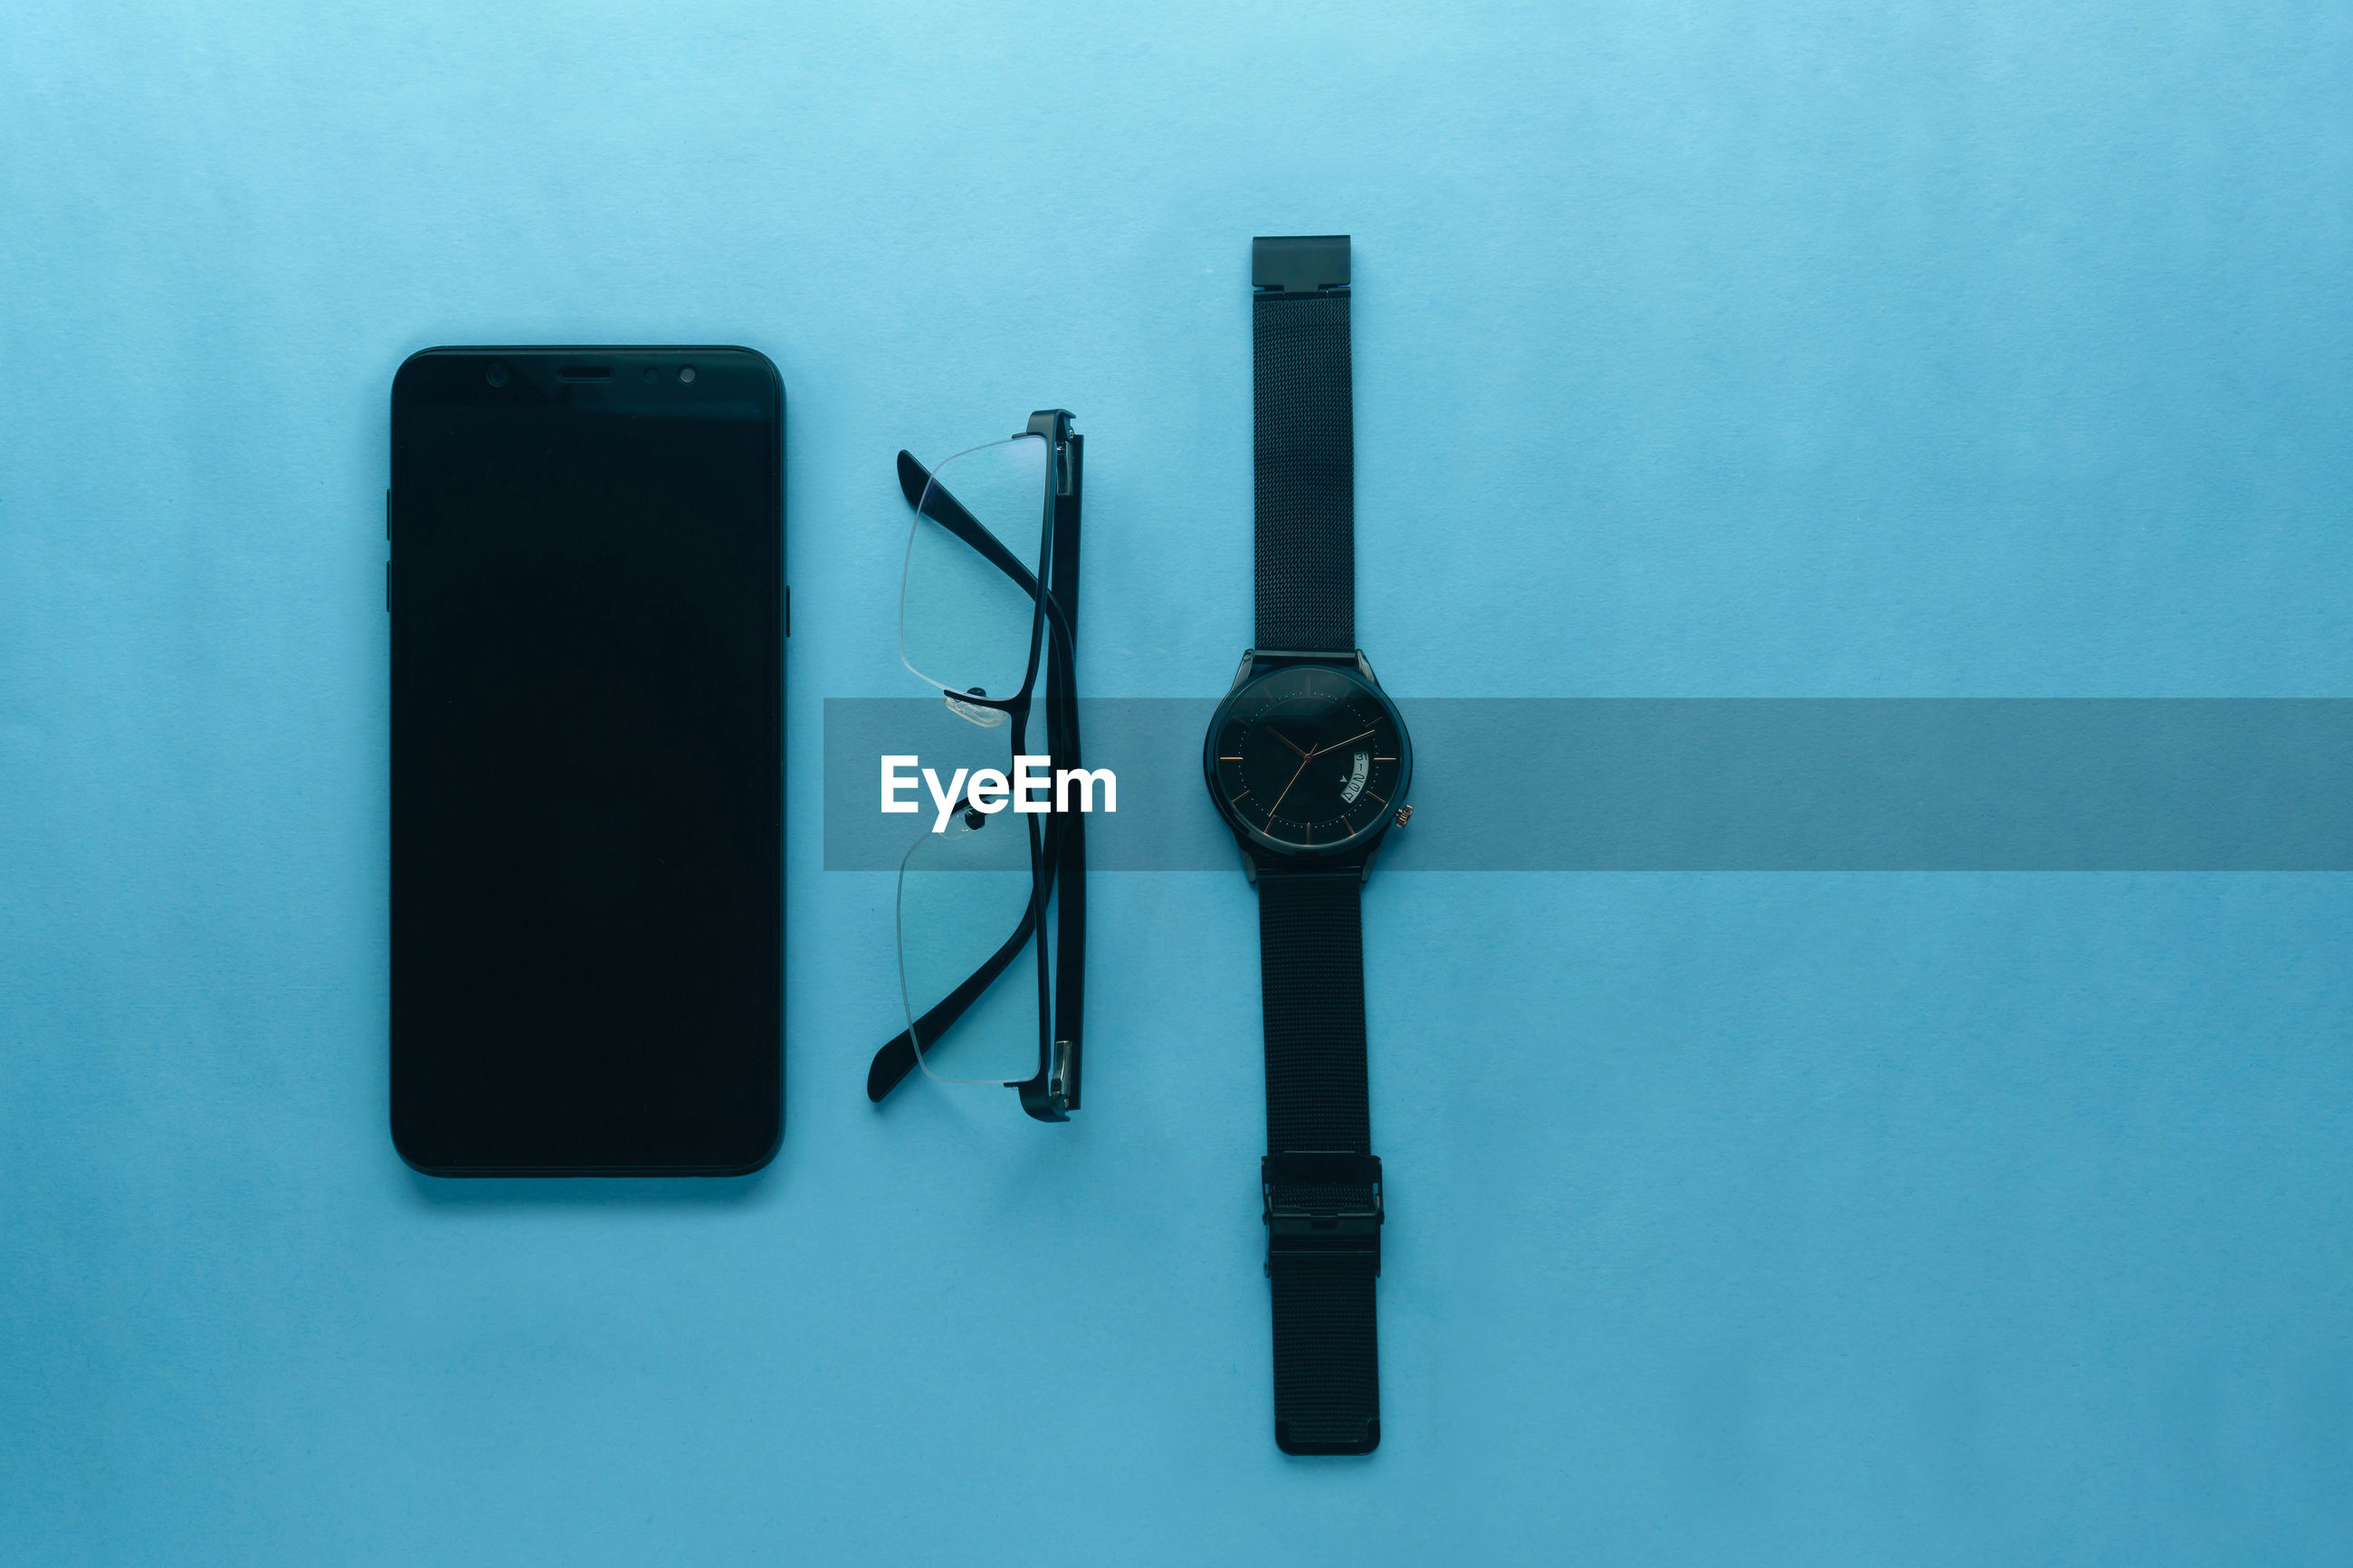 High angle view of gadget, eye-glasses and watch on table against blue background